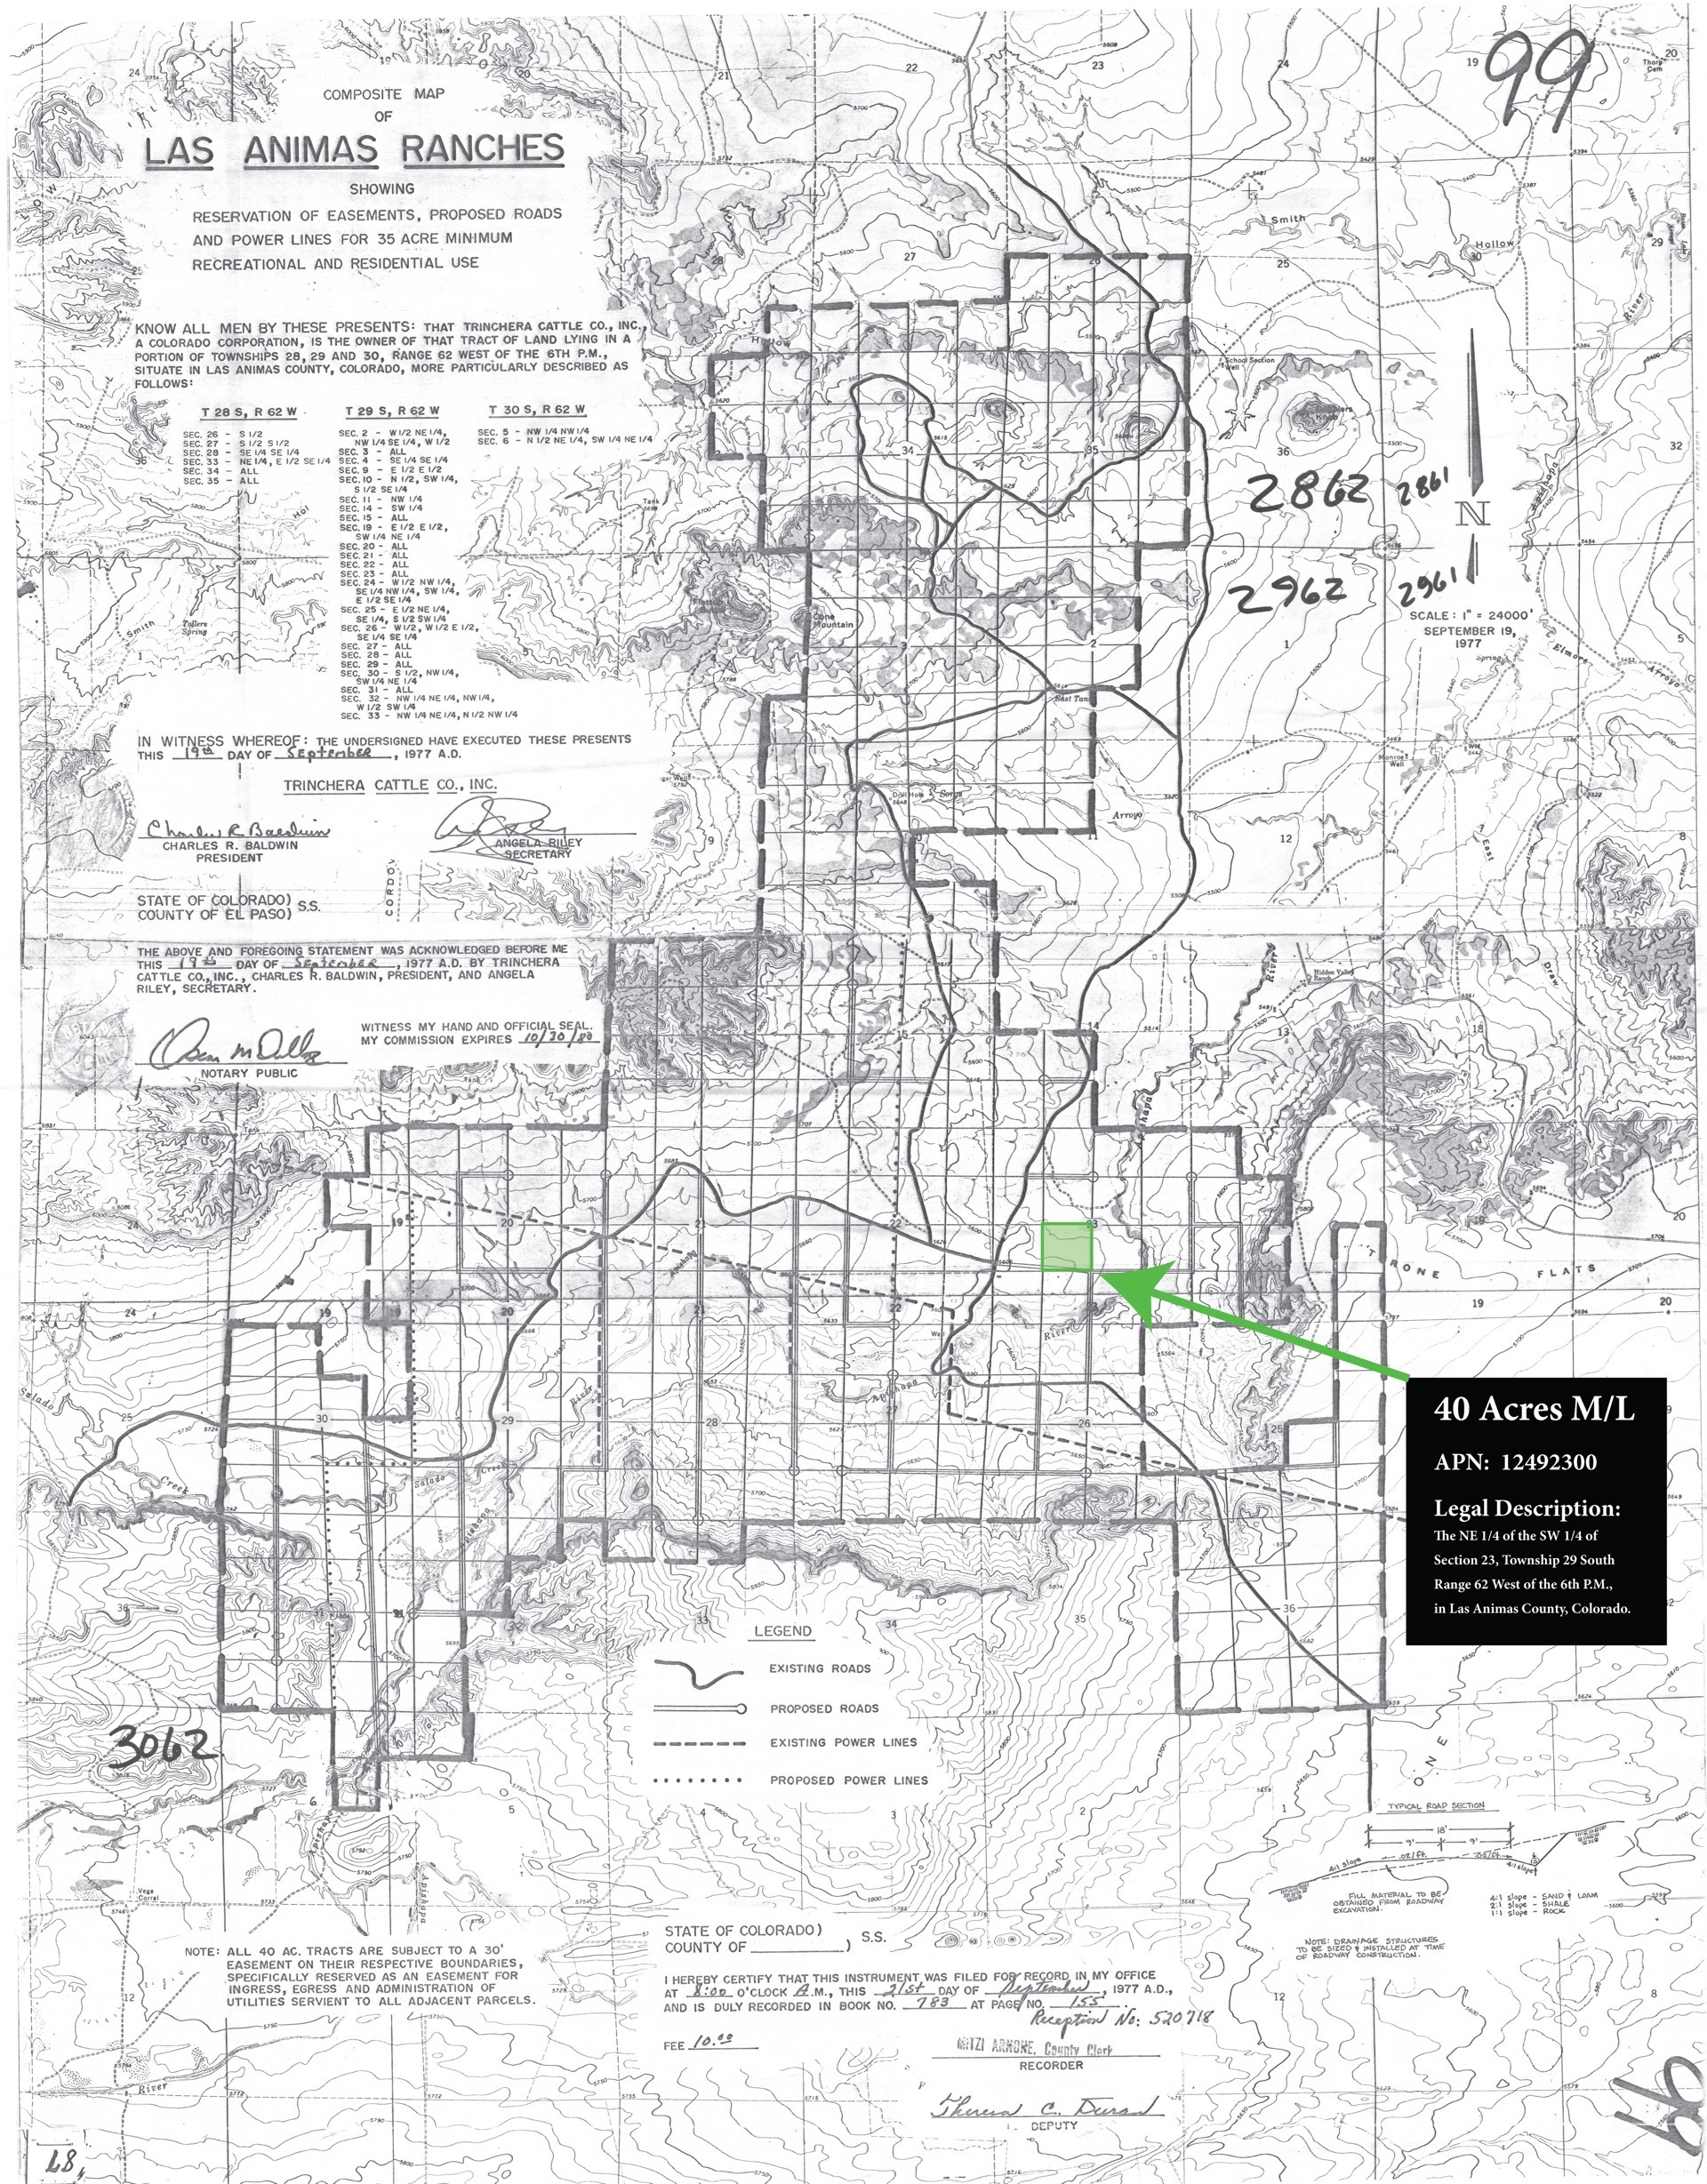 40 Acres in Southern Colorado near Trinidad & Apishapa River on las animas colorado, las animas high school, rocky mountain national park road map, co road map, pueblo west road map, sterling road map, las animas county courthouse, simpson road map, vail road map, central city road map, fort collins road map, las animas county plat map, las animas county records, longmont road map, roosevelt national forest road map, estes park road map, lafayette road map, broomfield road map, mount evans road map, quay county nm satlite map,